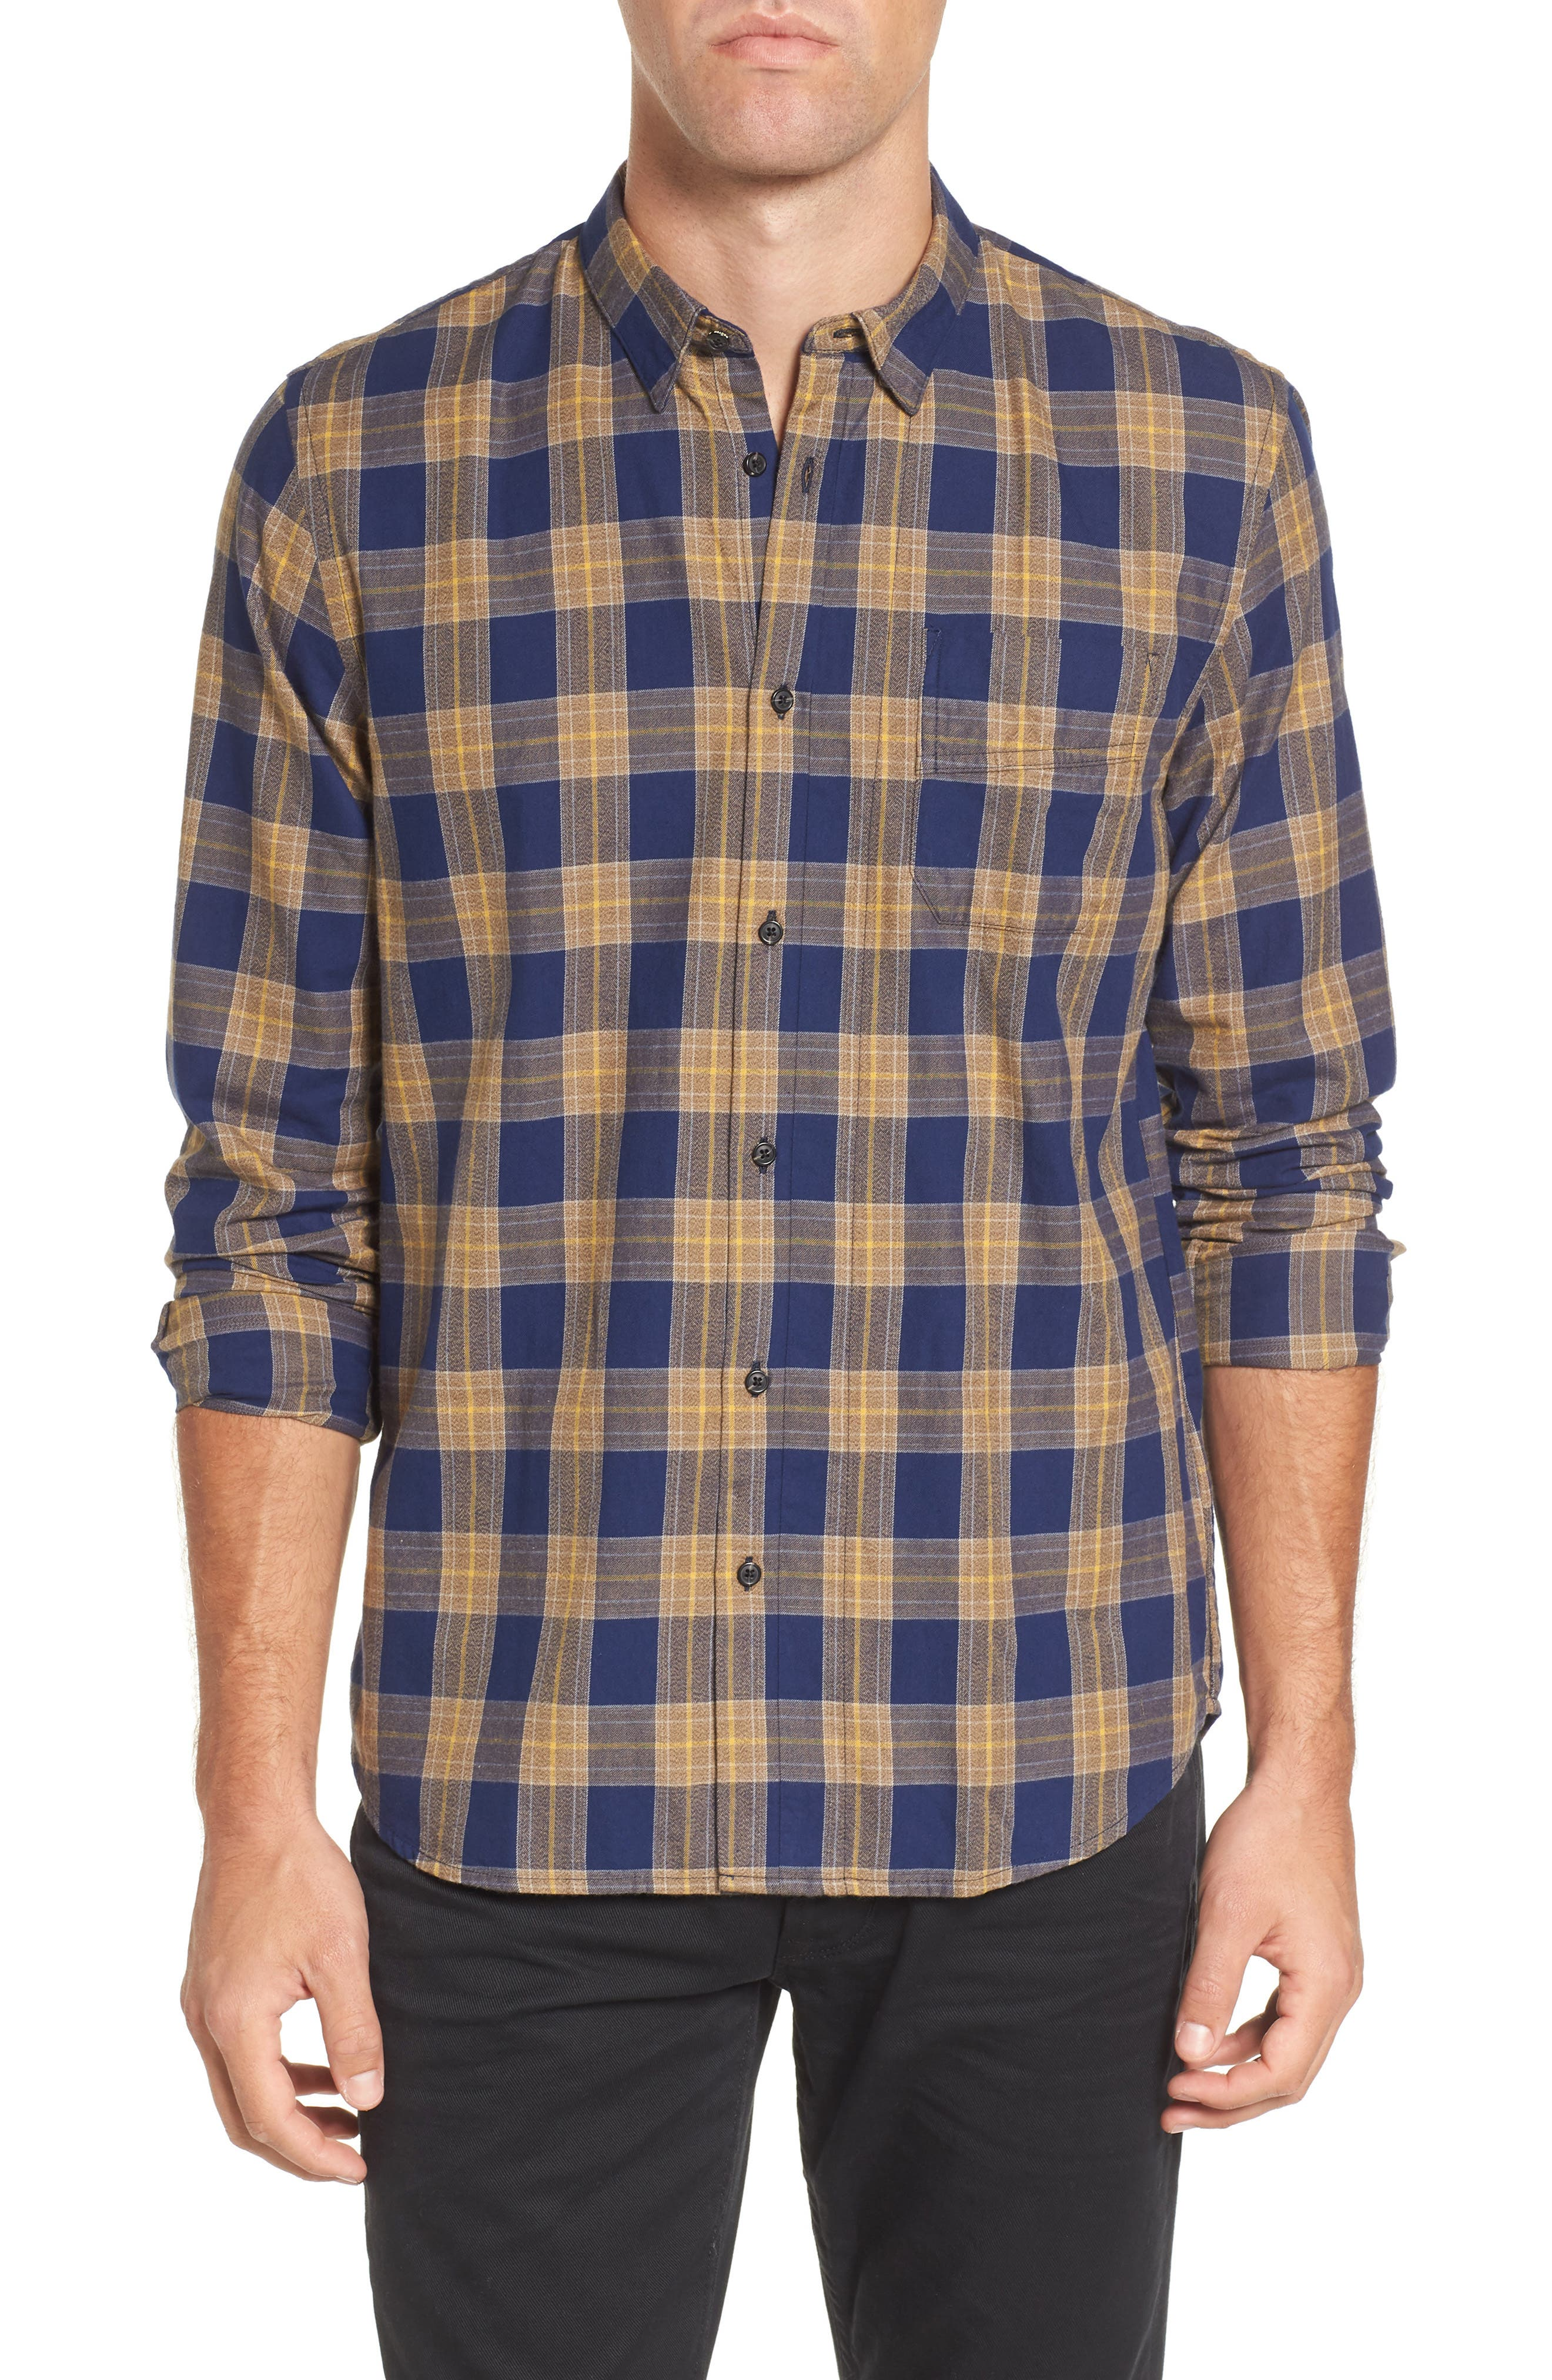 Scotch & Sode Brushed Cotton Shirt,                         Main,                         color, 410